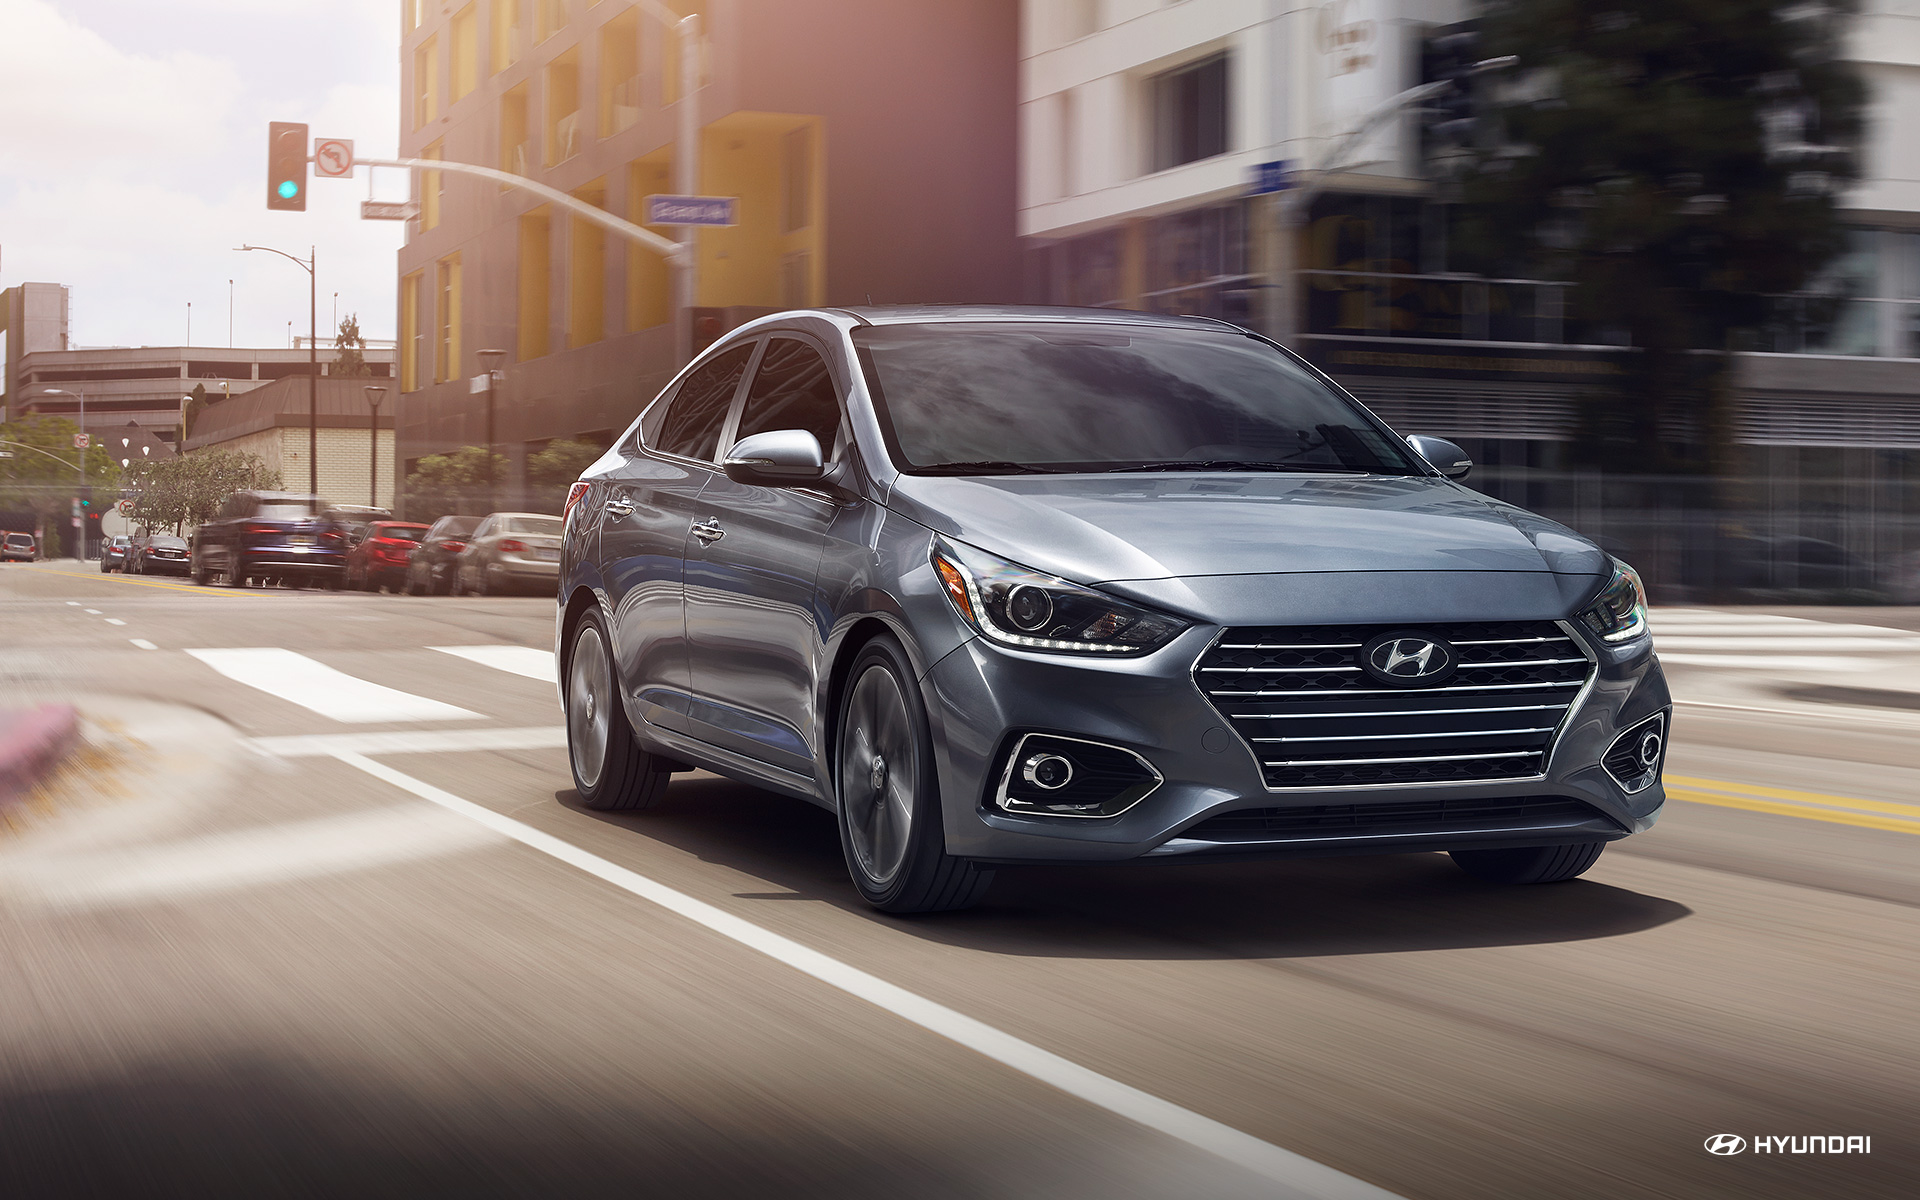 2018 Hyundai Accent Urban Gray Exterior Front View